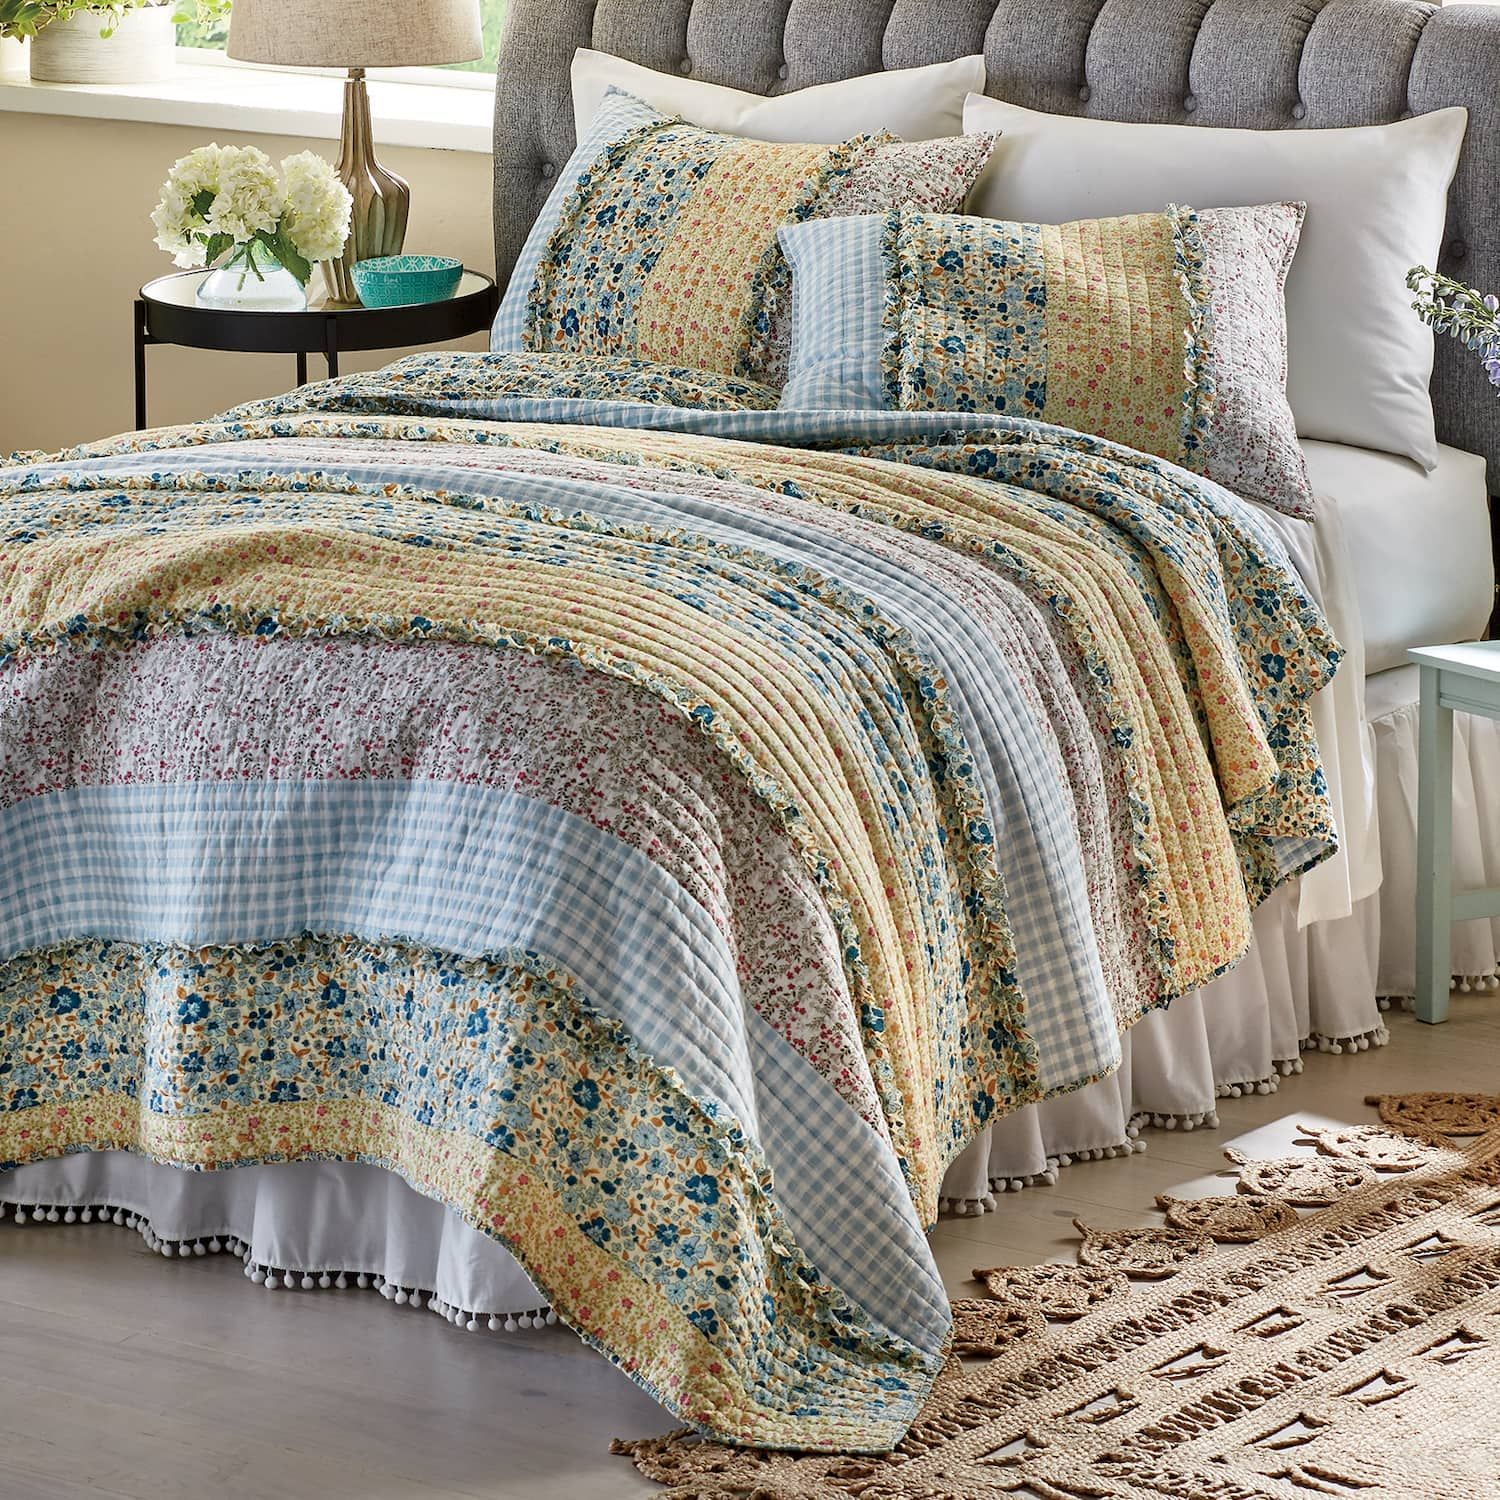 Bluebell Oversized Quilt And Sham Country Door Oversized Quilt Shabby Chic Room Country Bedroom